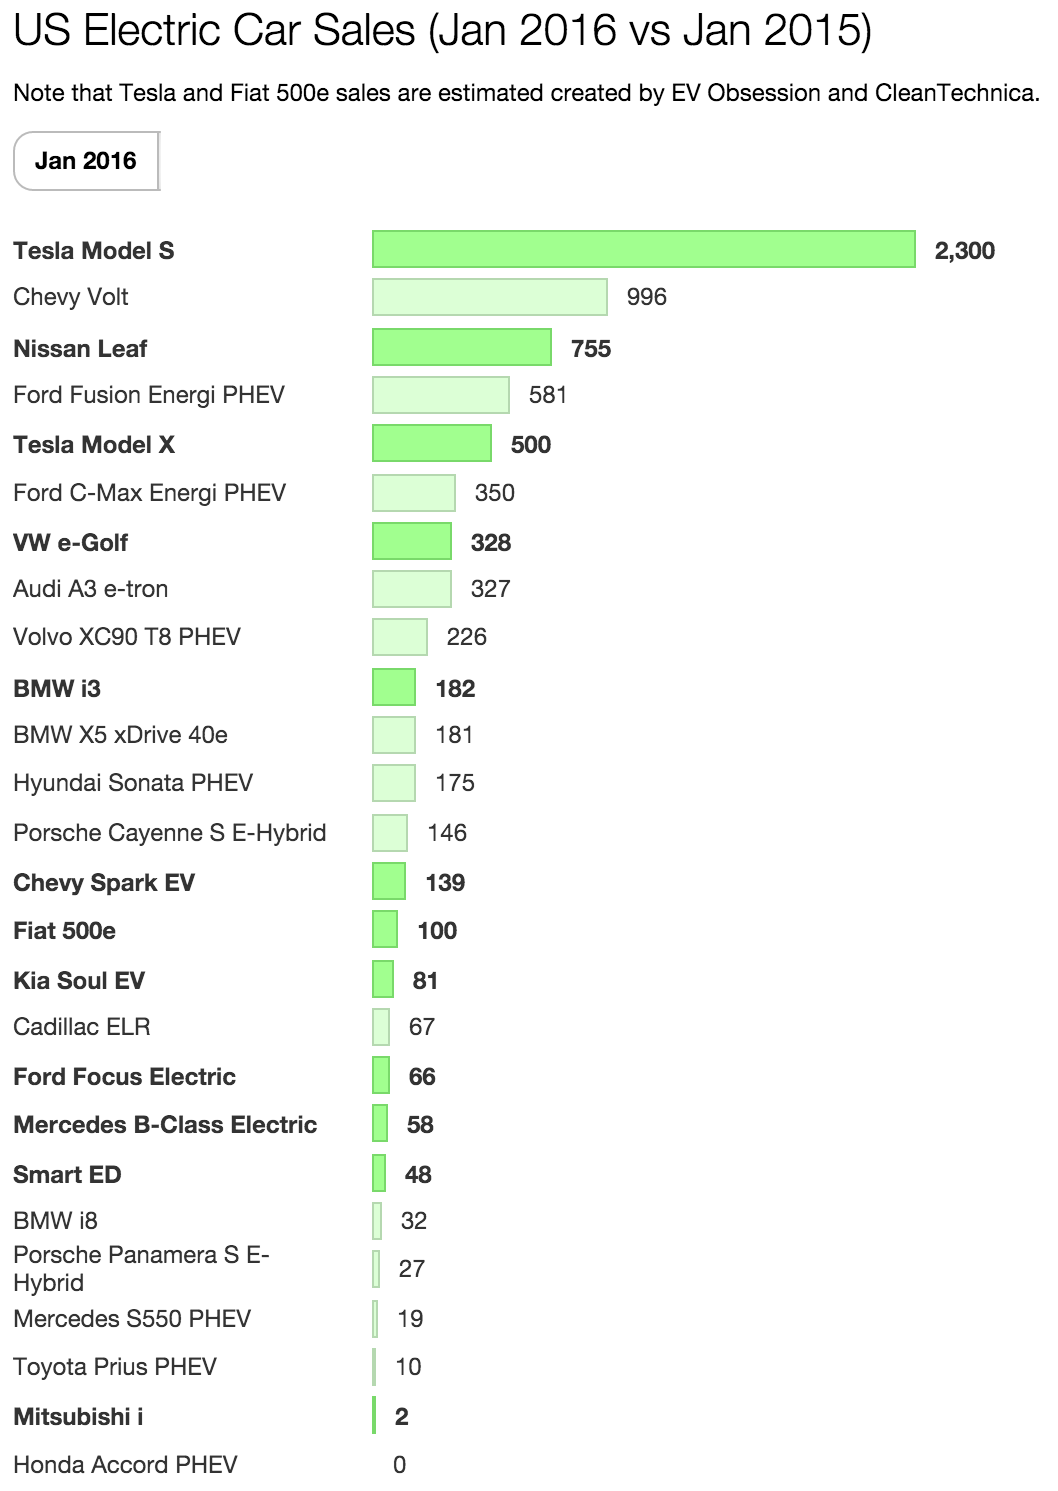 US electric car sales Jan 16